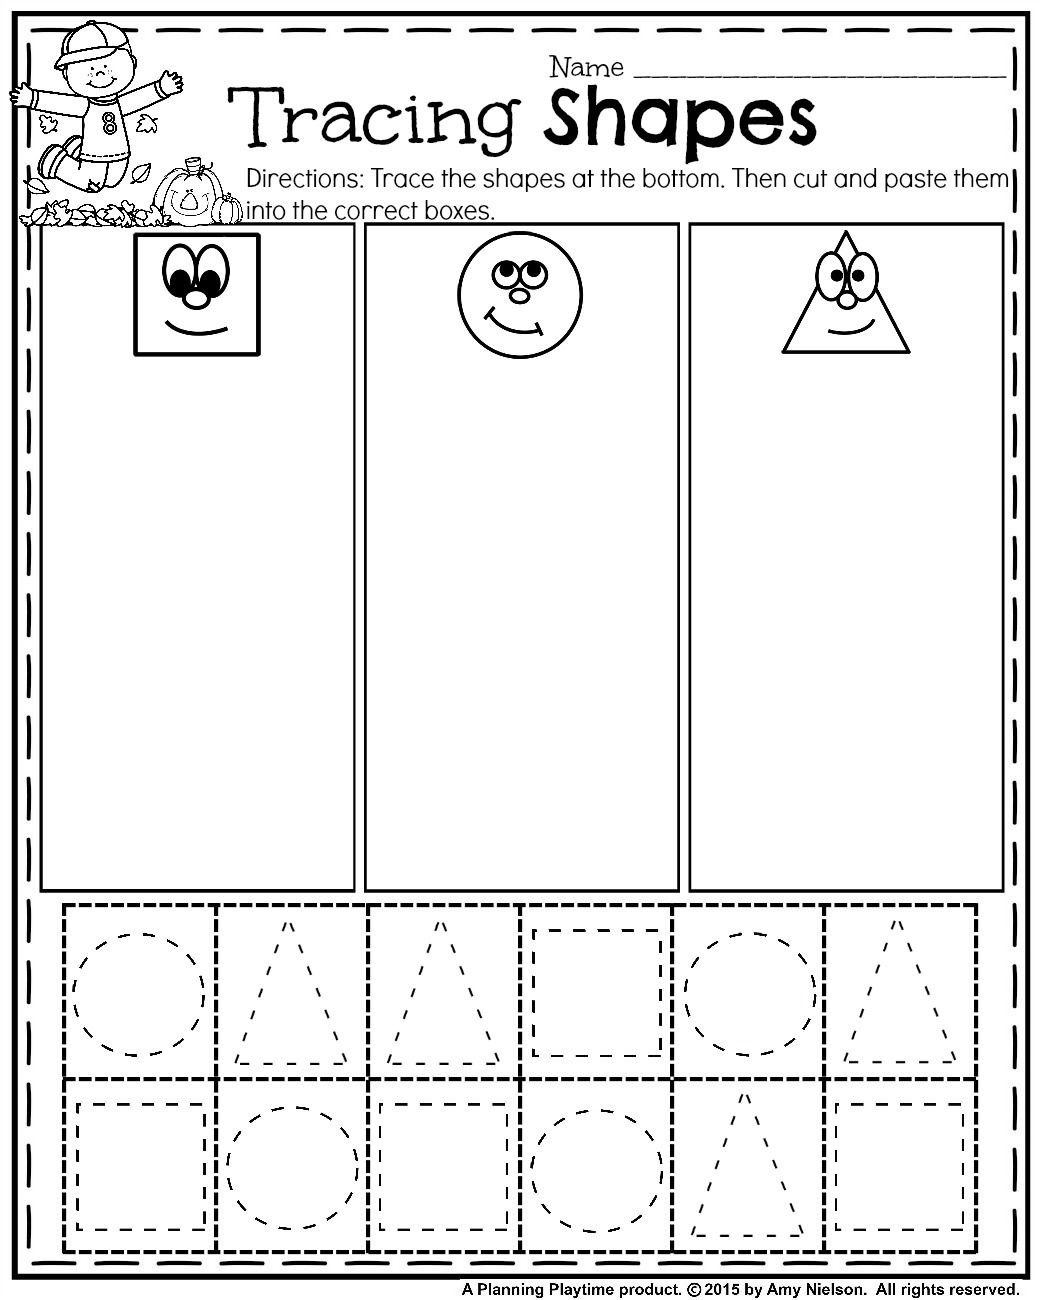 October Preschool Worksheets | Sheets | Preschool Worksheets, Shape - Free Printable Kindergarten Worksheets Cut And Paste